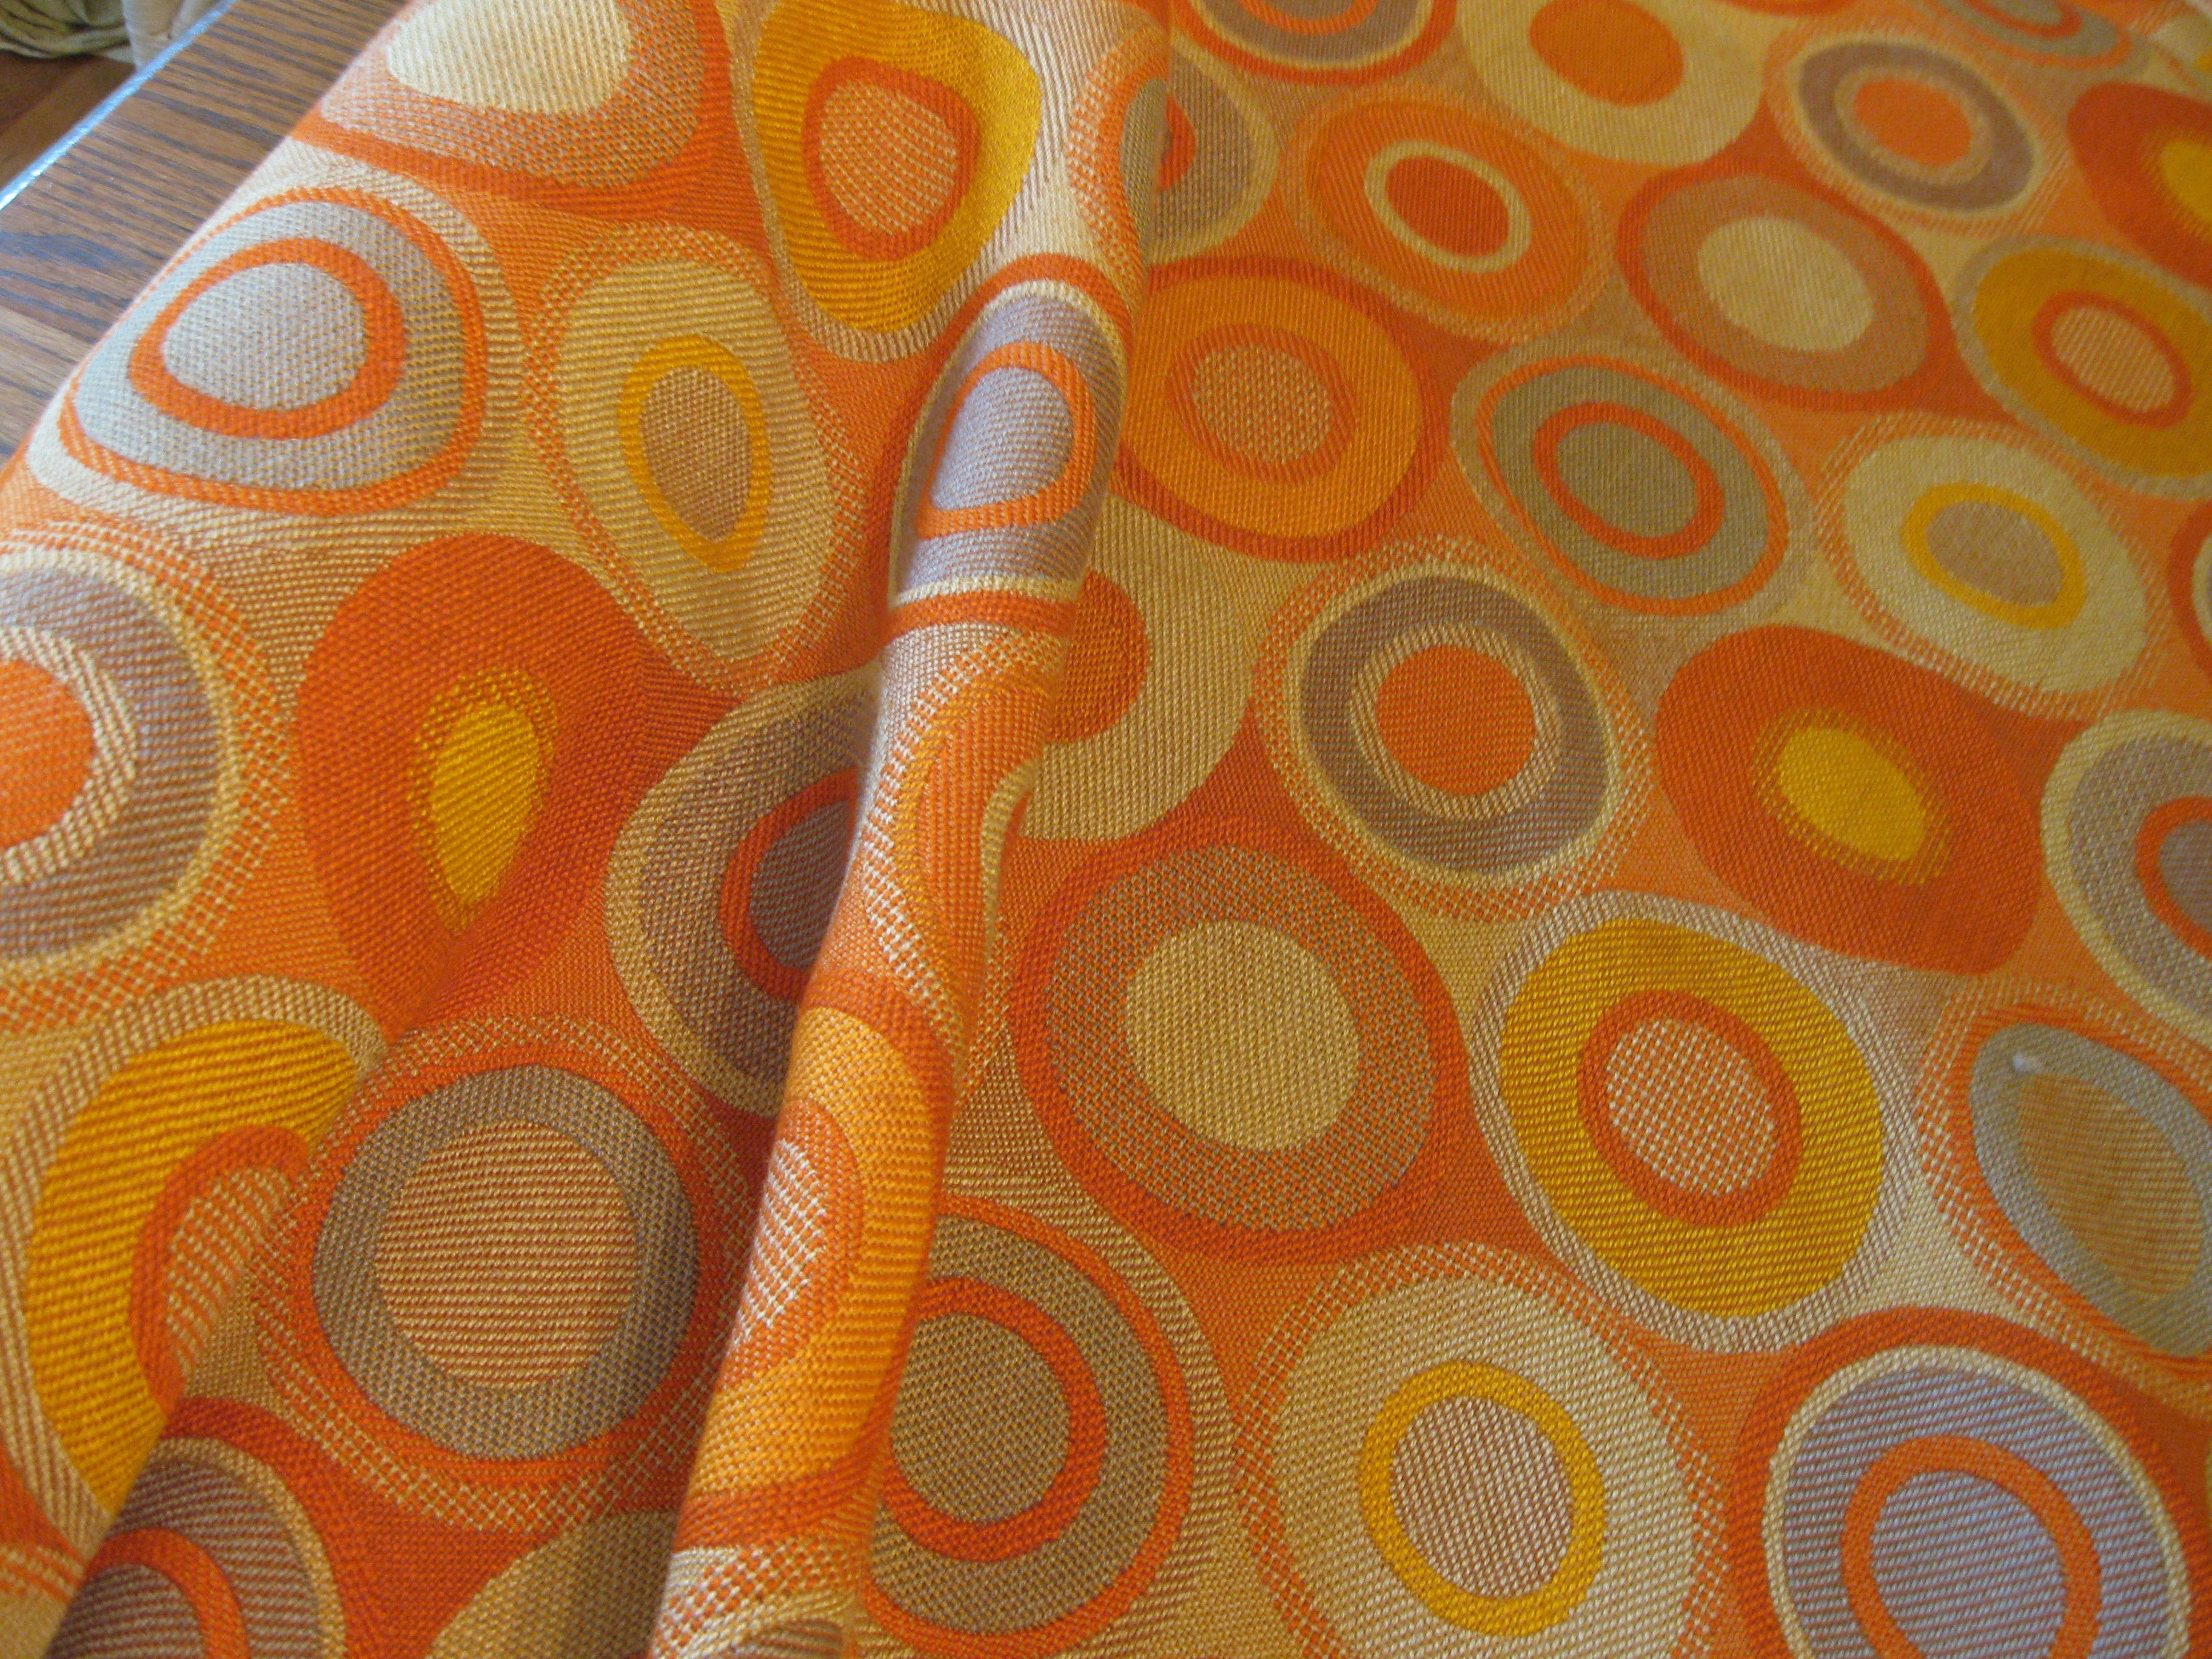 Vintage 70s Upholstery Fabric Great 70s Fabric Still Looking For A Sofa Save That Fabric